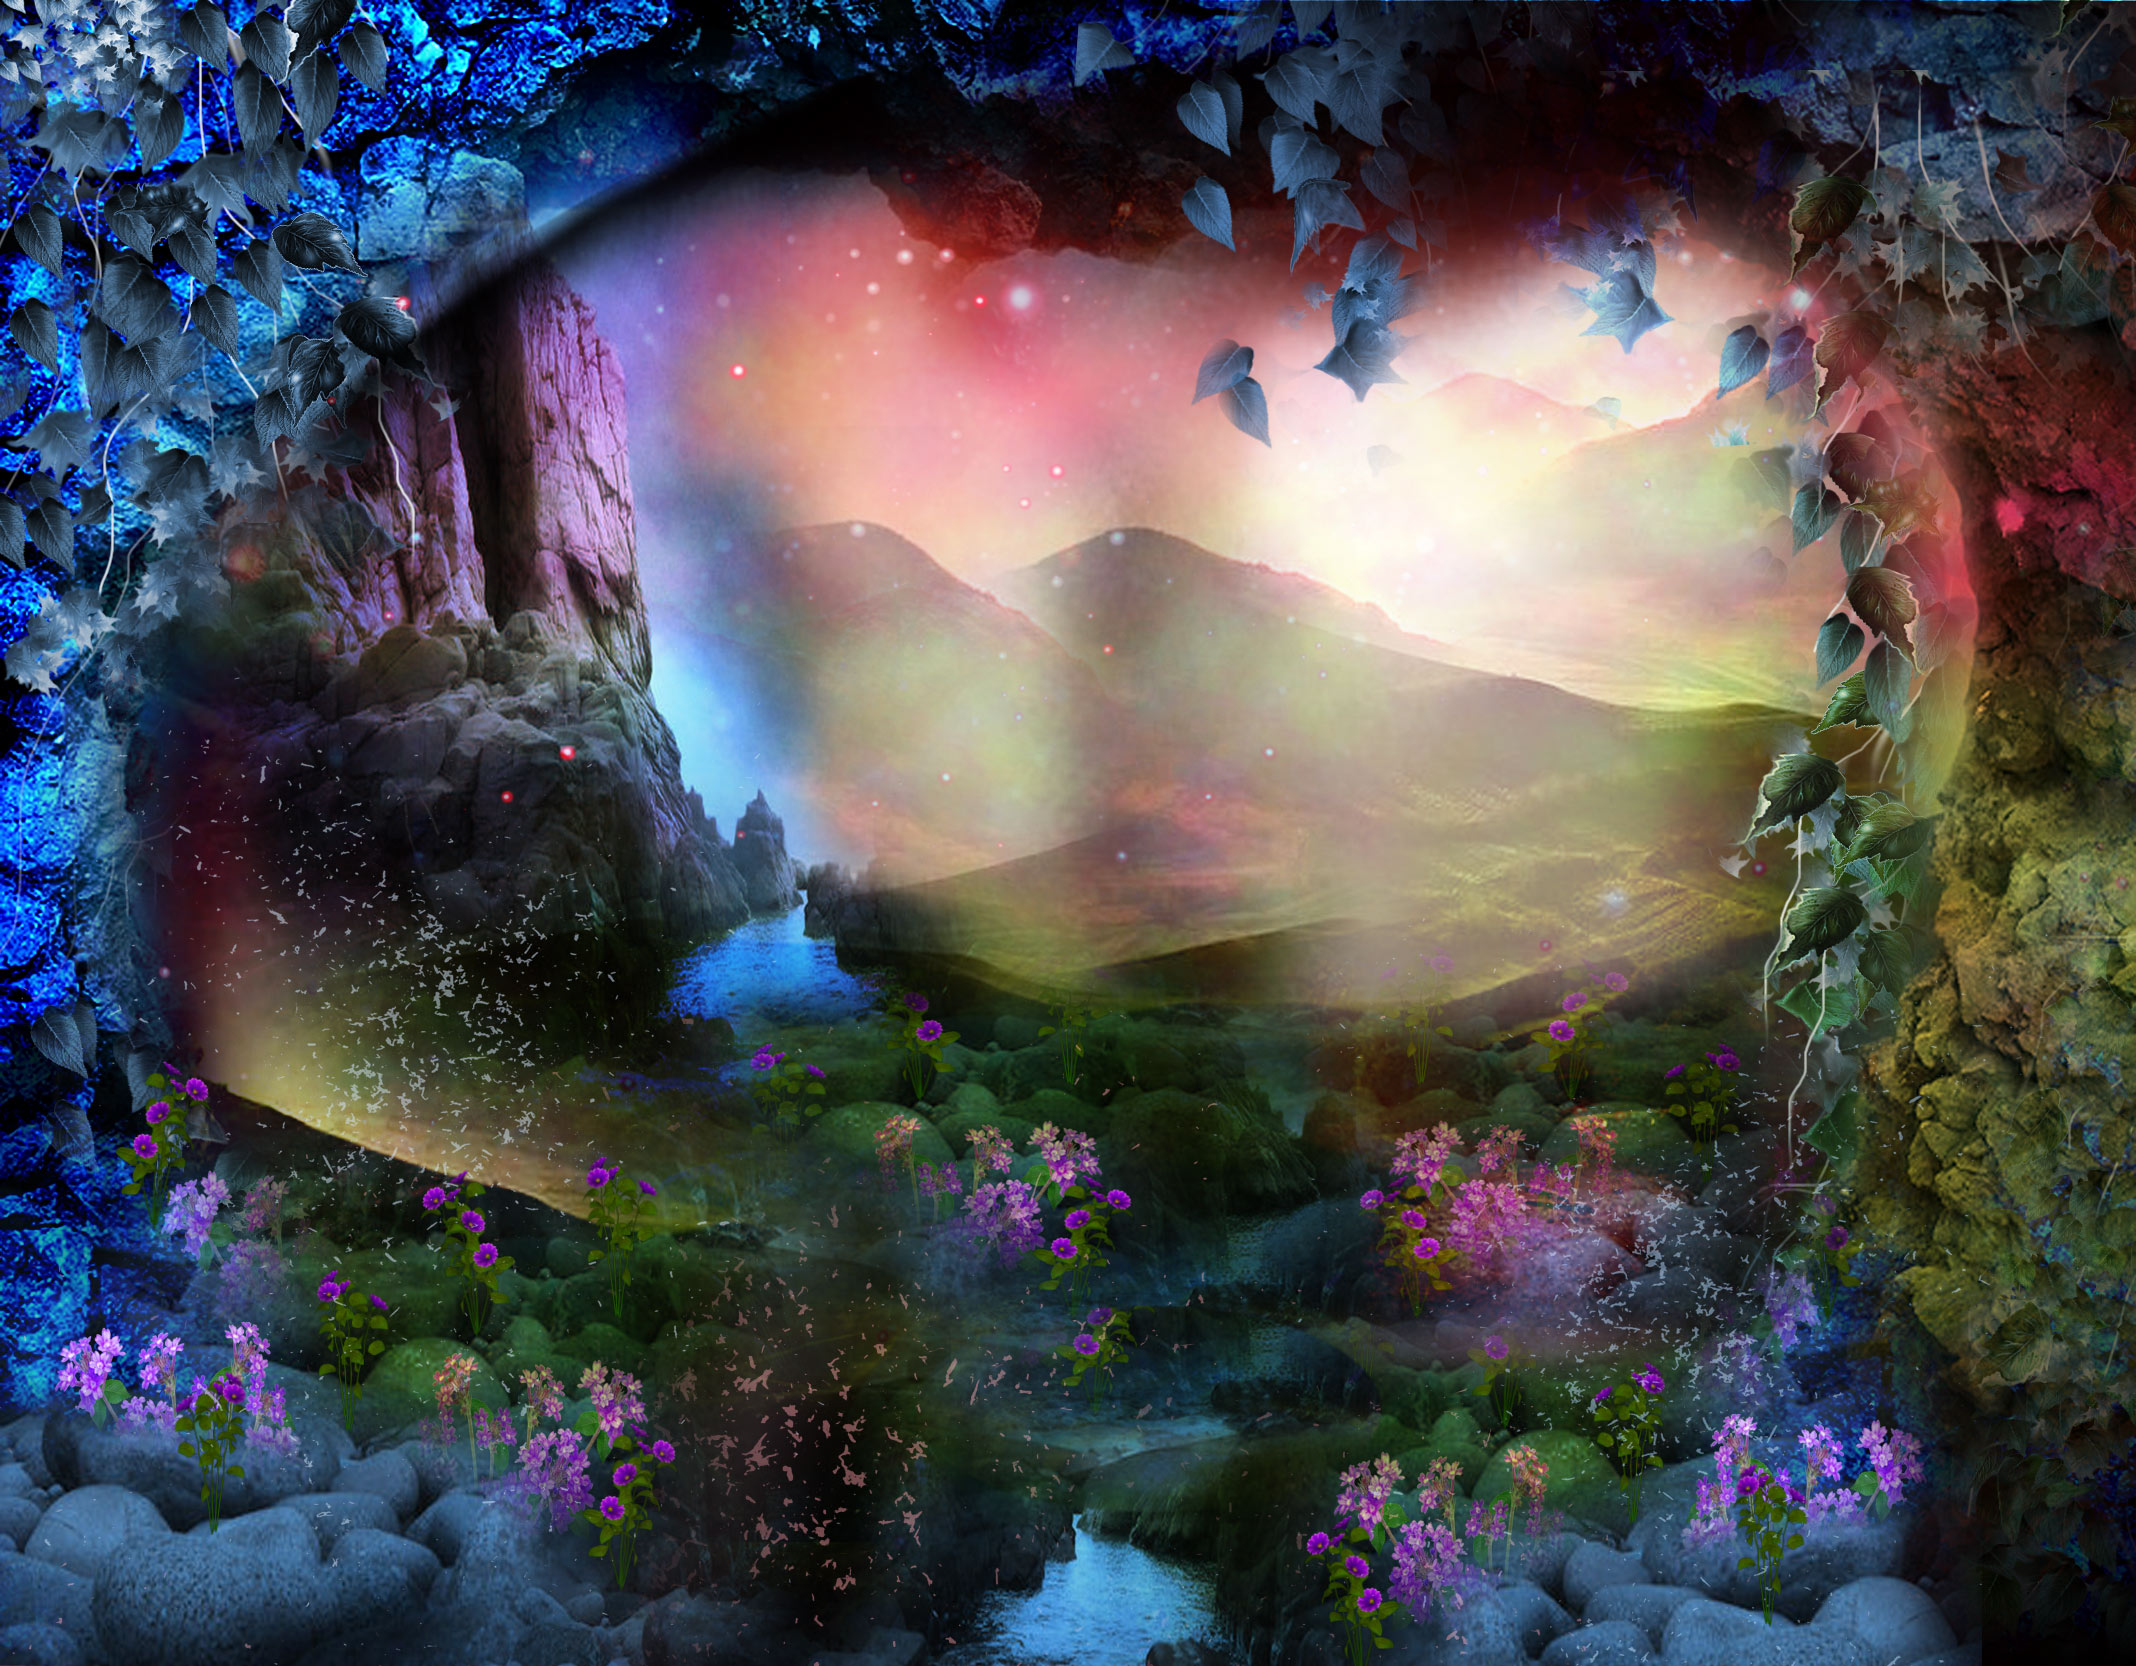 Mystic wallpapers wallpapersafari - Mystical background pictures ...